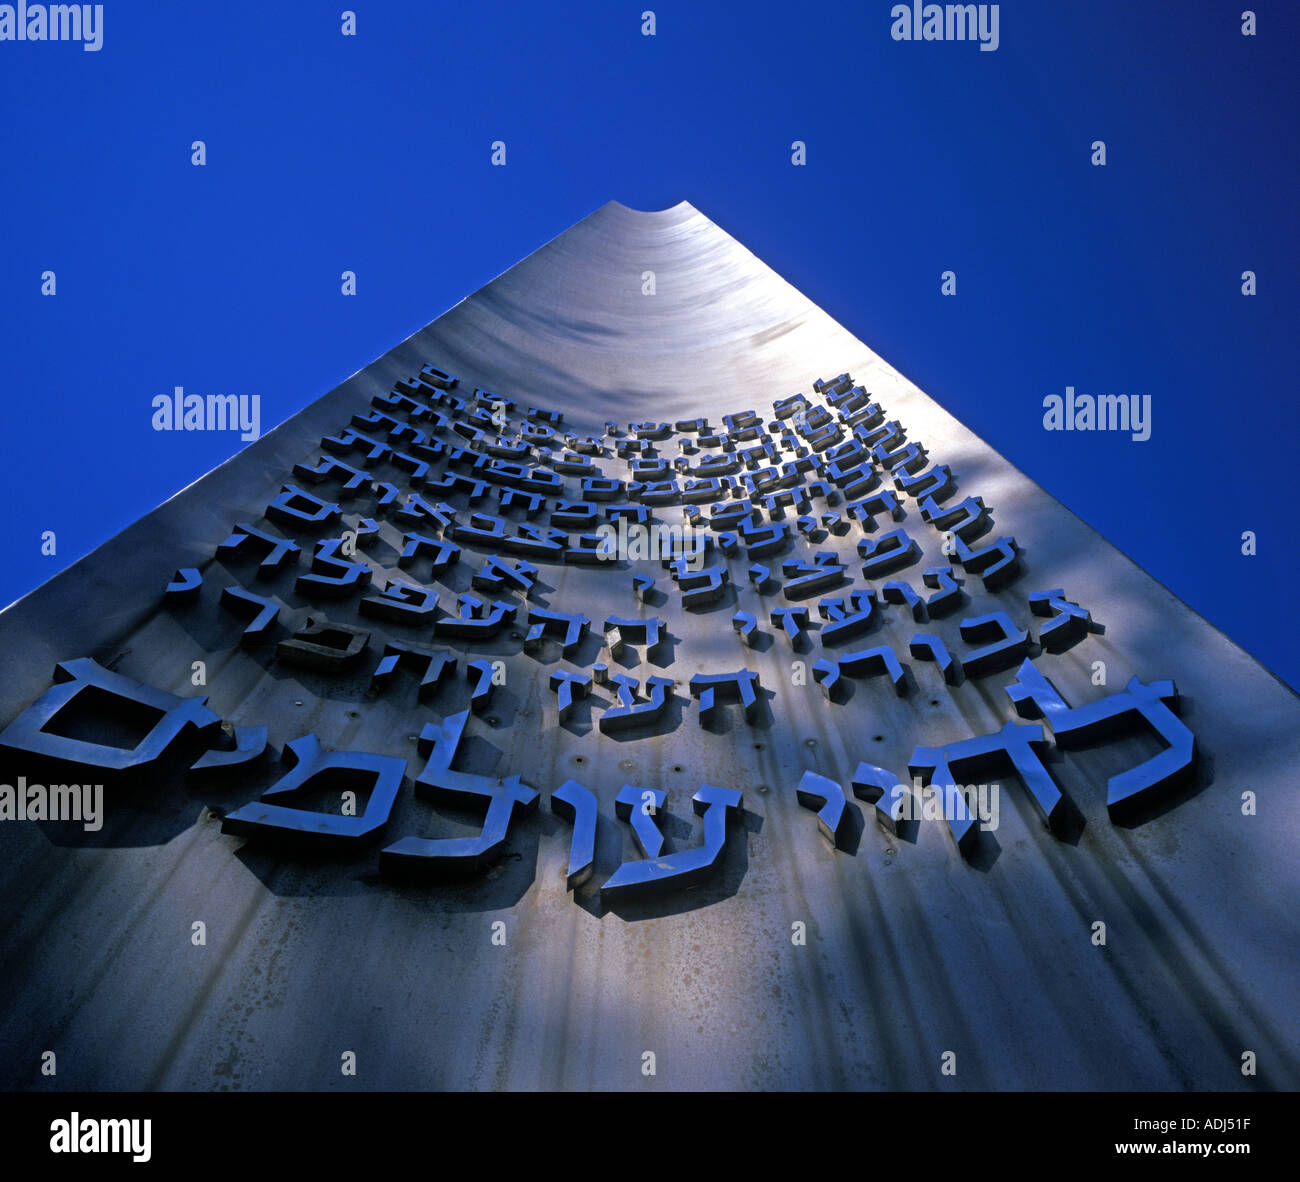 Pillar of Heroism at the Holocaust Museum Yad Vashem, Jerusalem, Israel Stock Photo